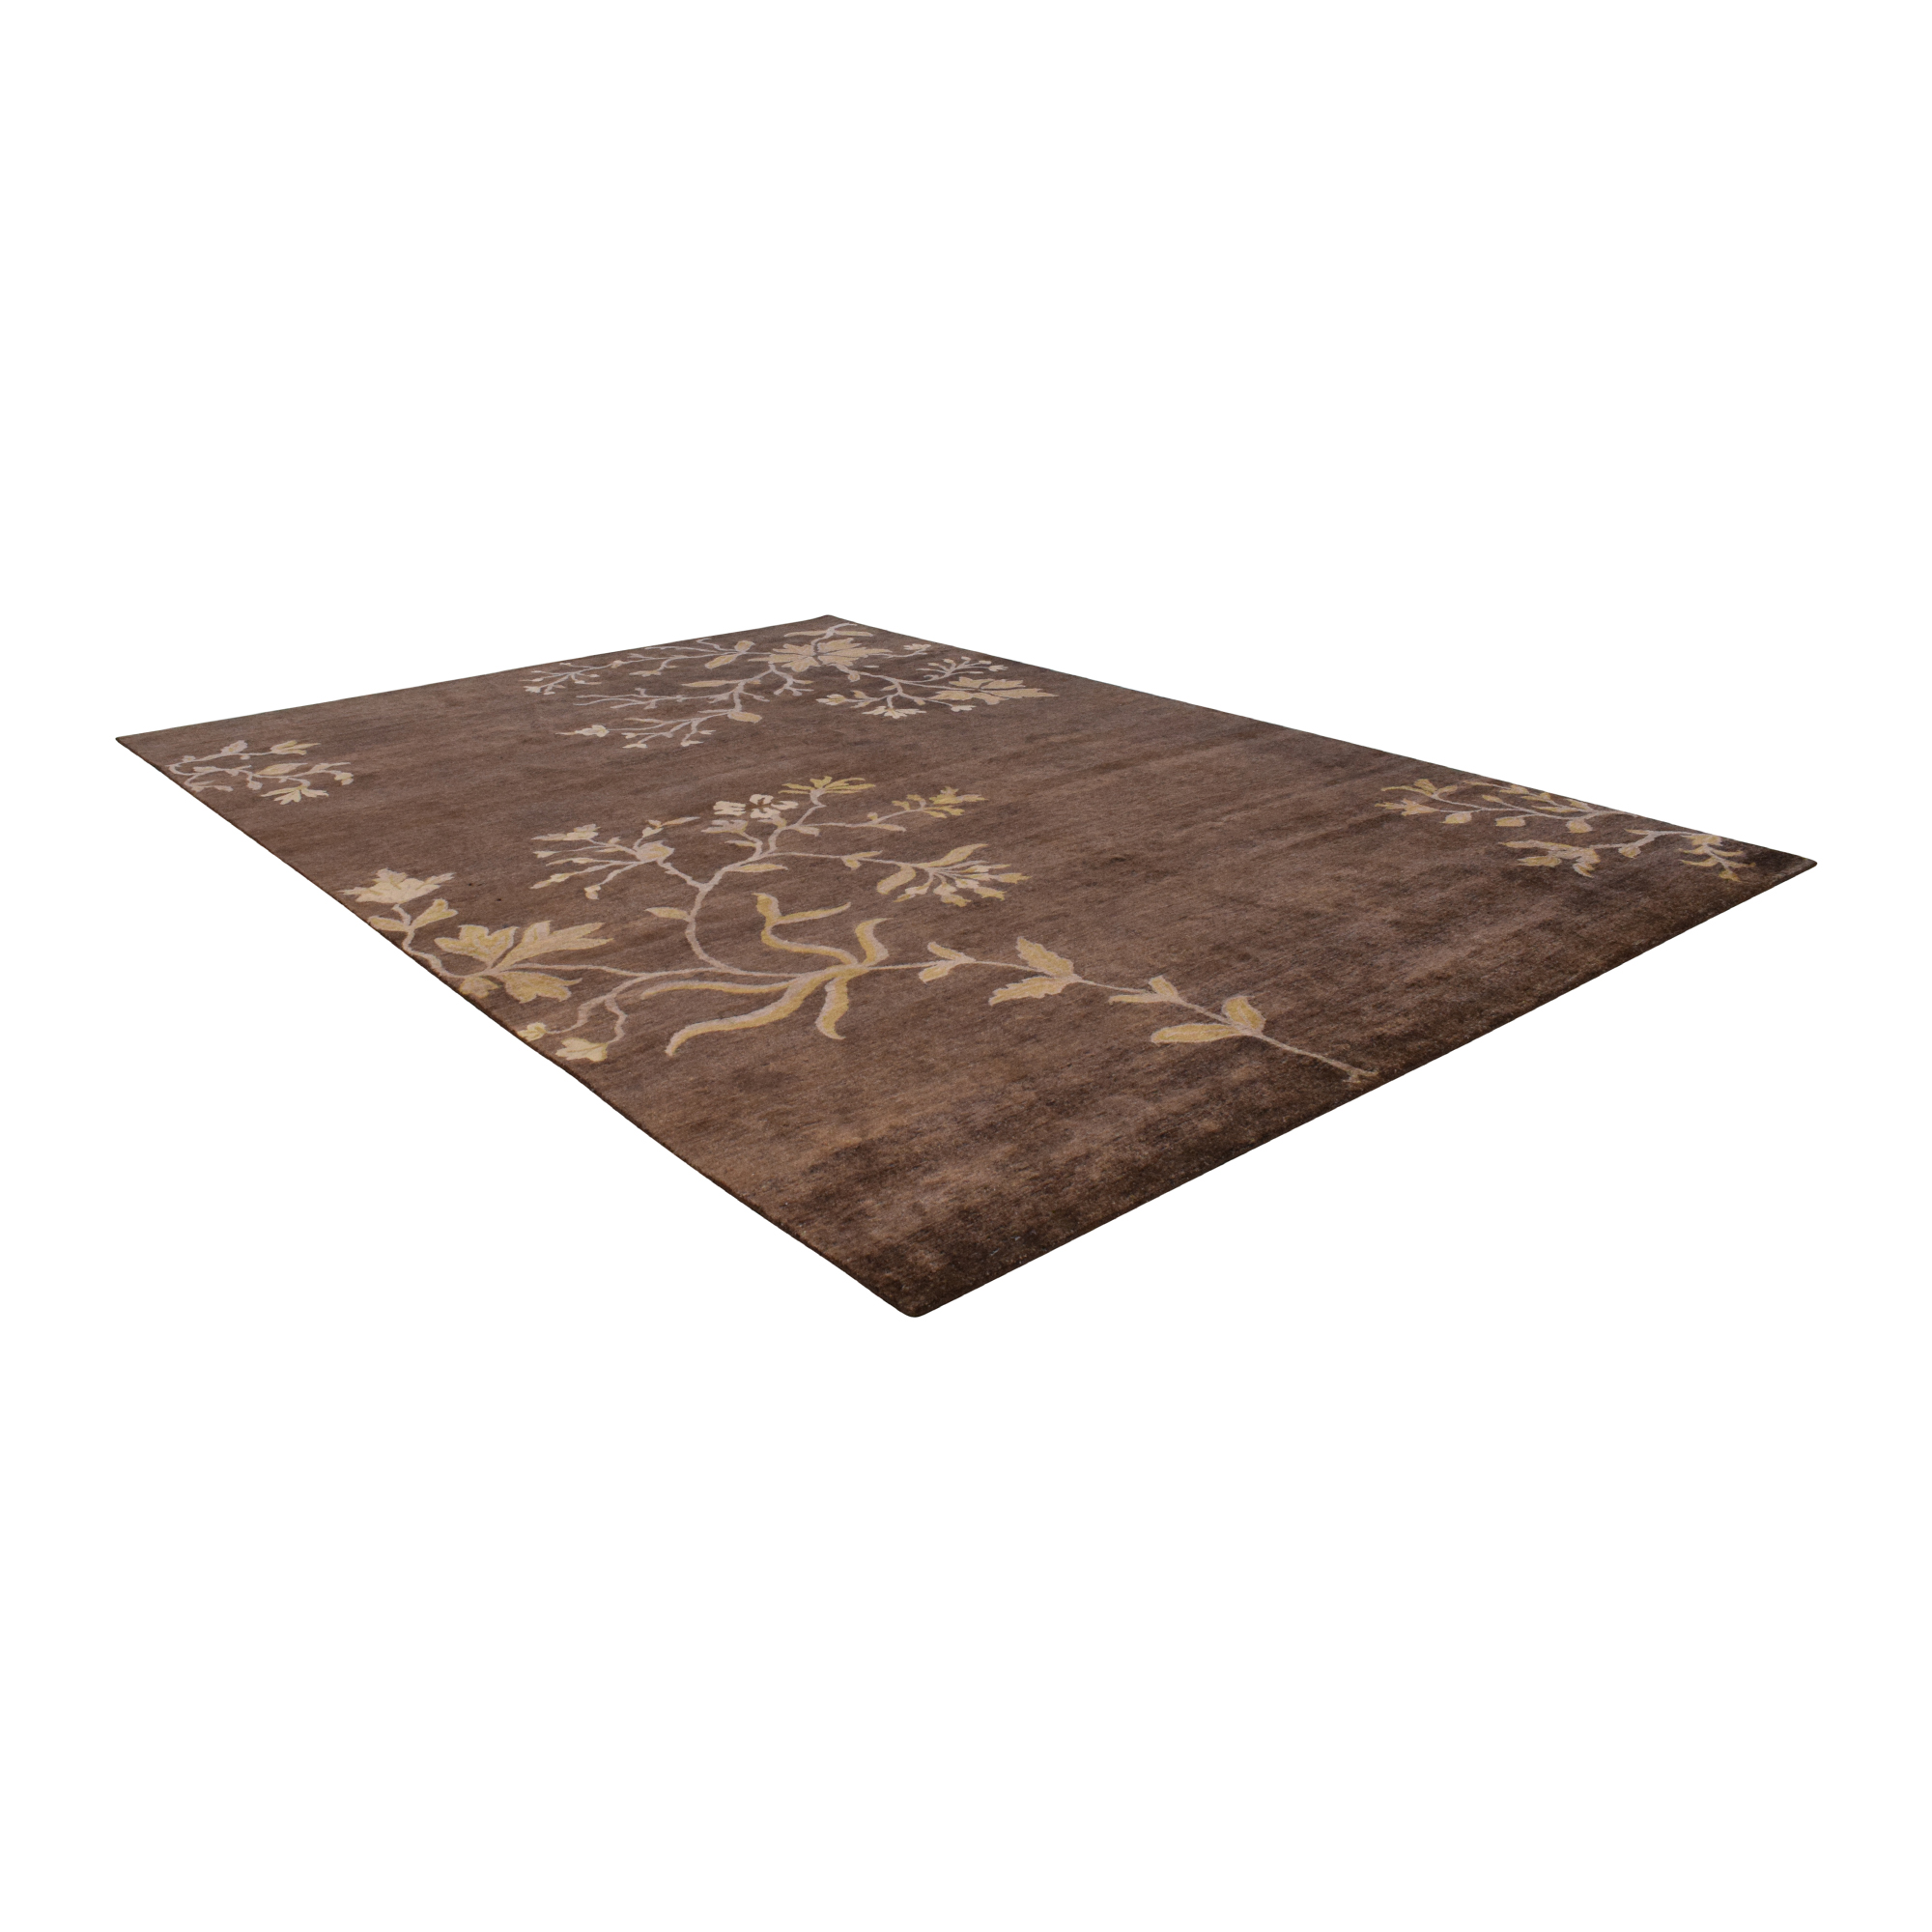 Feizy Feizy Botanical Style Area Rug pa